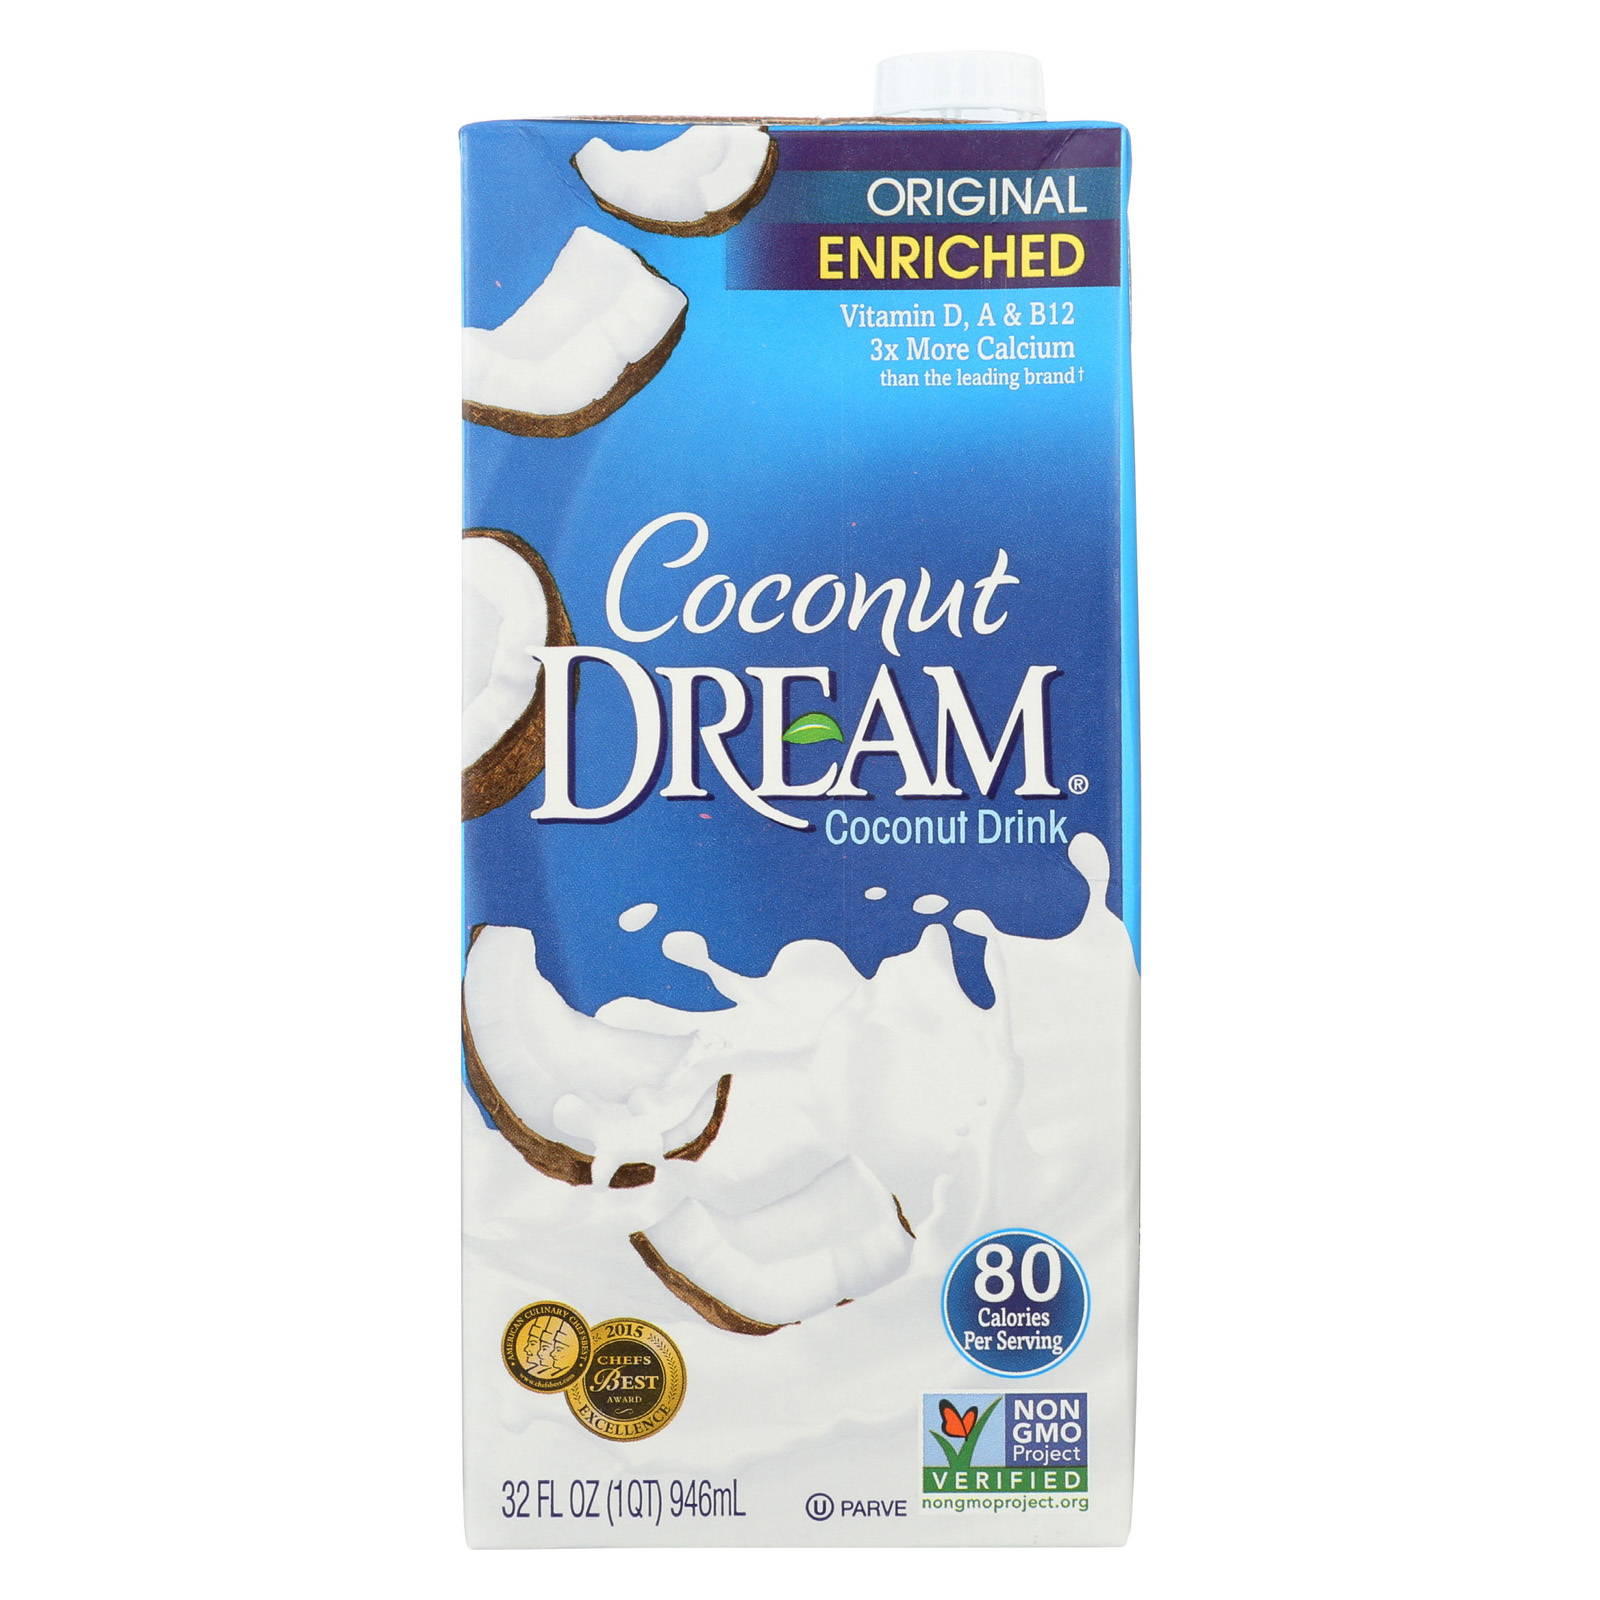 Coconut Dream Coconut Dream Original - Case of 12 - 32 fl oz